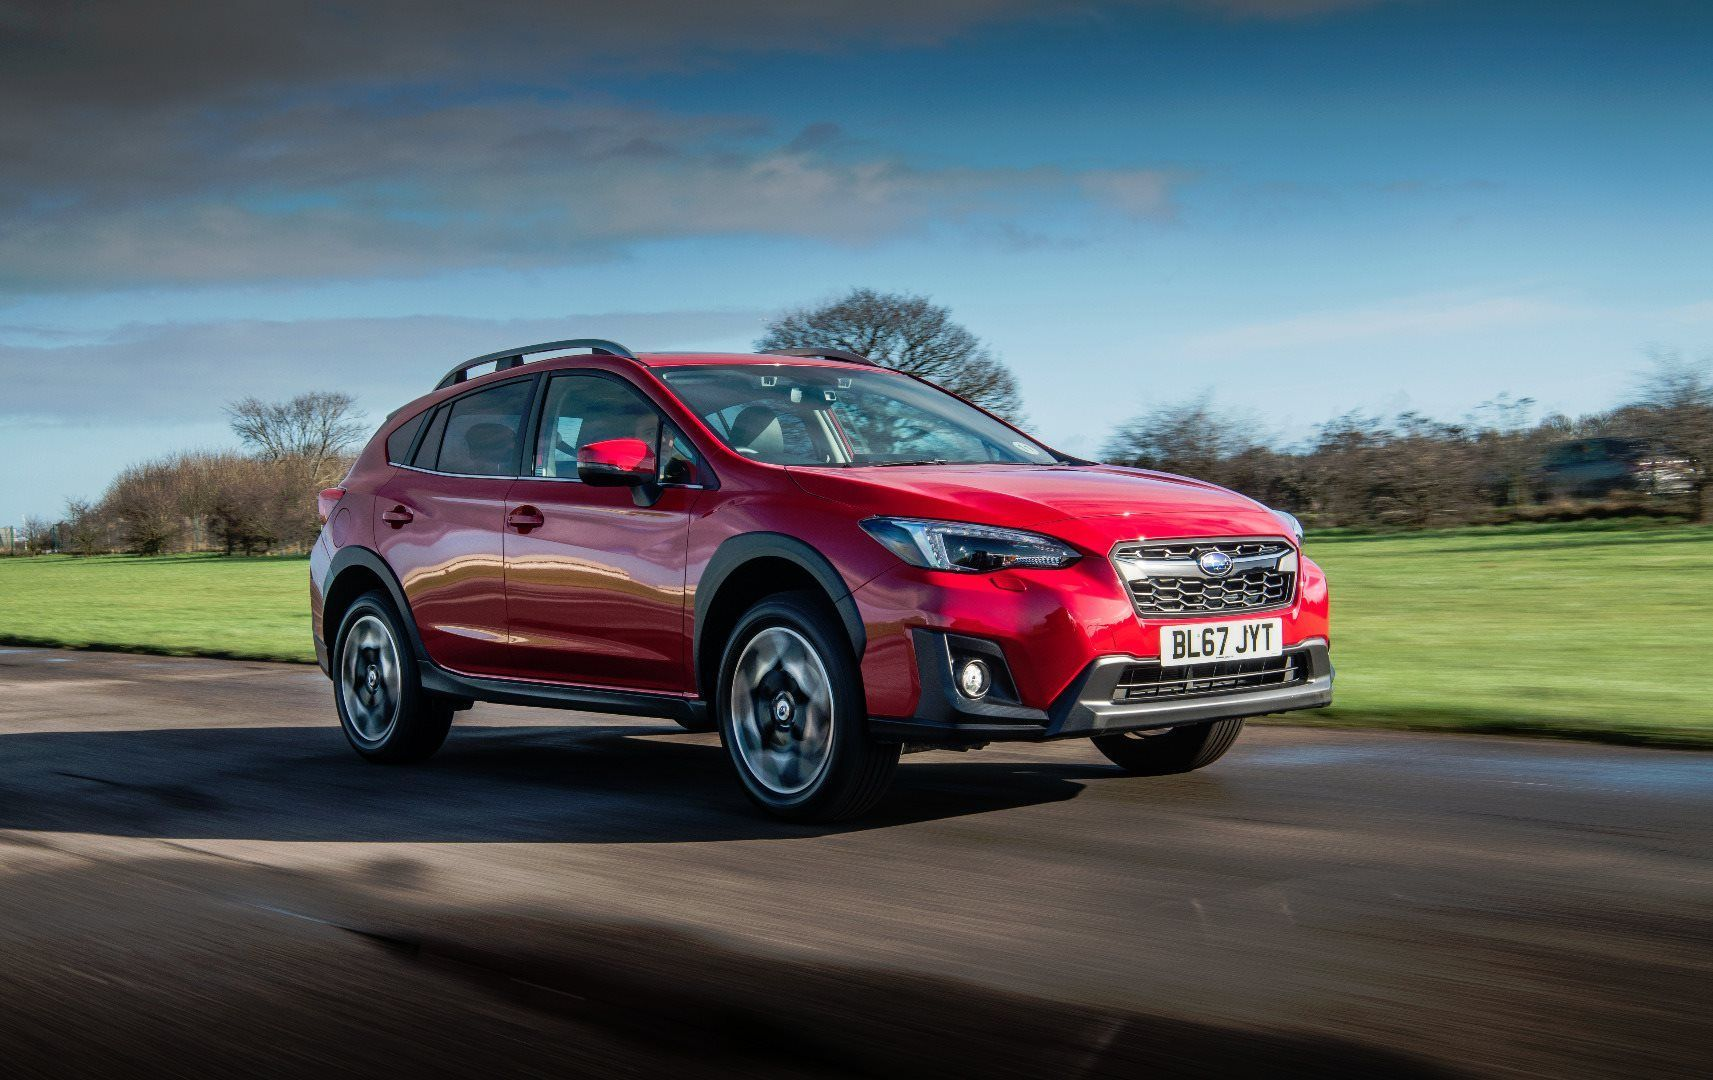 SUBARU UK COMPLETES ON PARTNERSHIP WITH IDEAL HOME SHOW AS OFFICIAL AUTOMOTIVE SPONSOR 2018